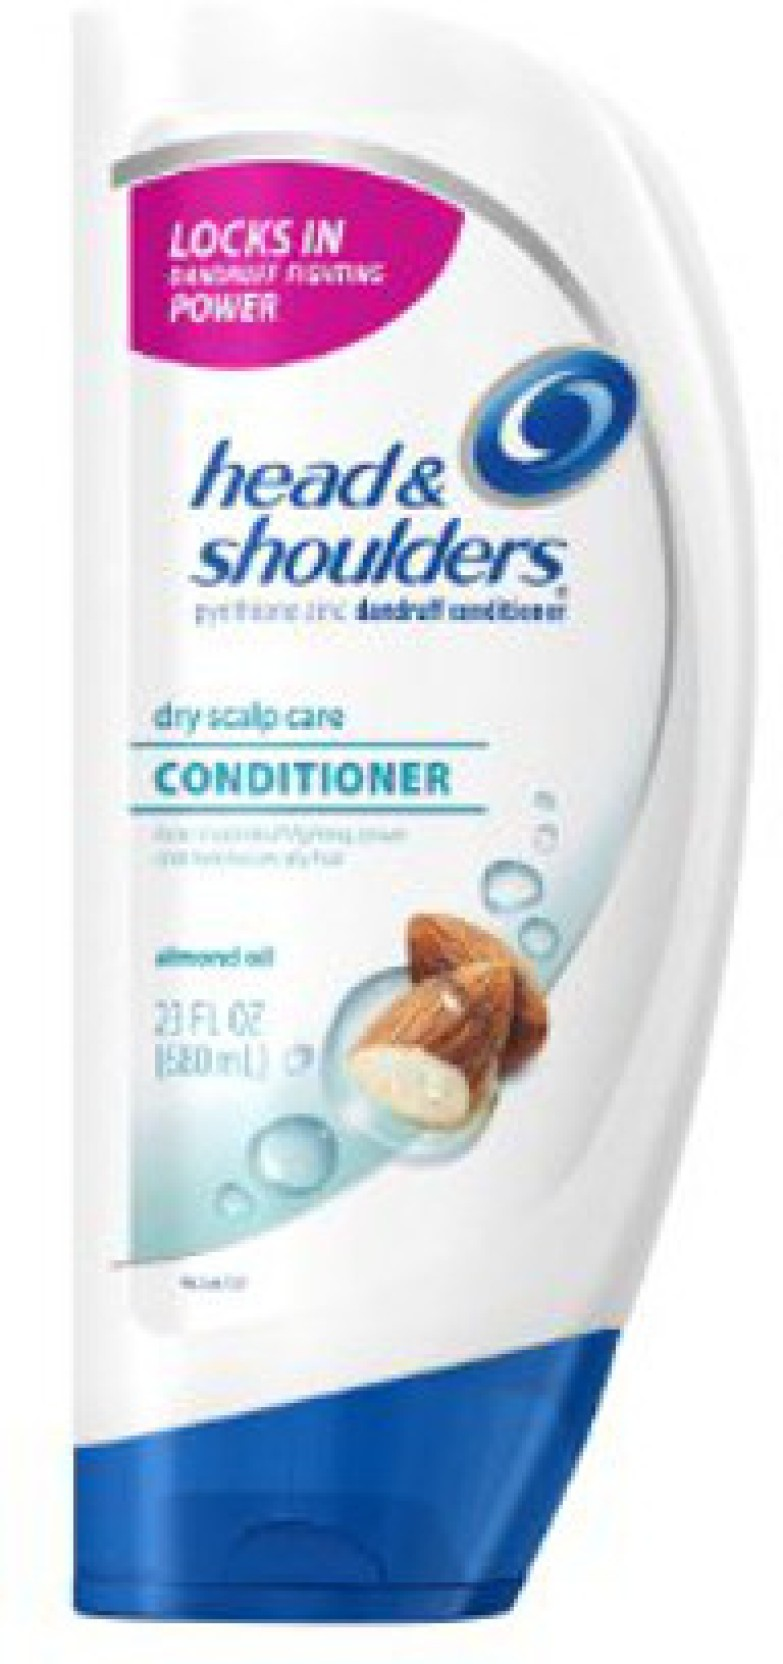 Head Shoulders Dry Scalp Care With Almond Oil Dandruff Conditioner Ampamp Shoulder Sampo Cool Menthol 680 Ml Share